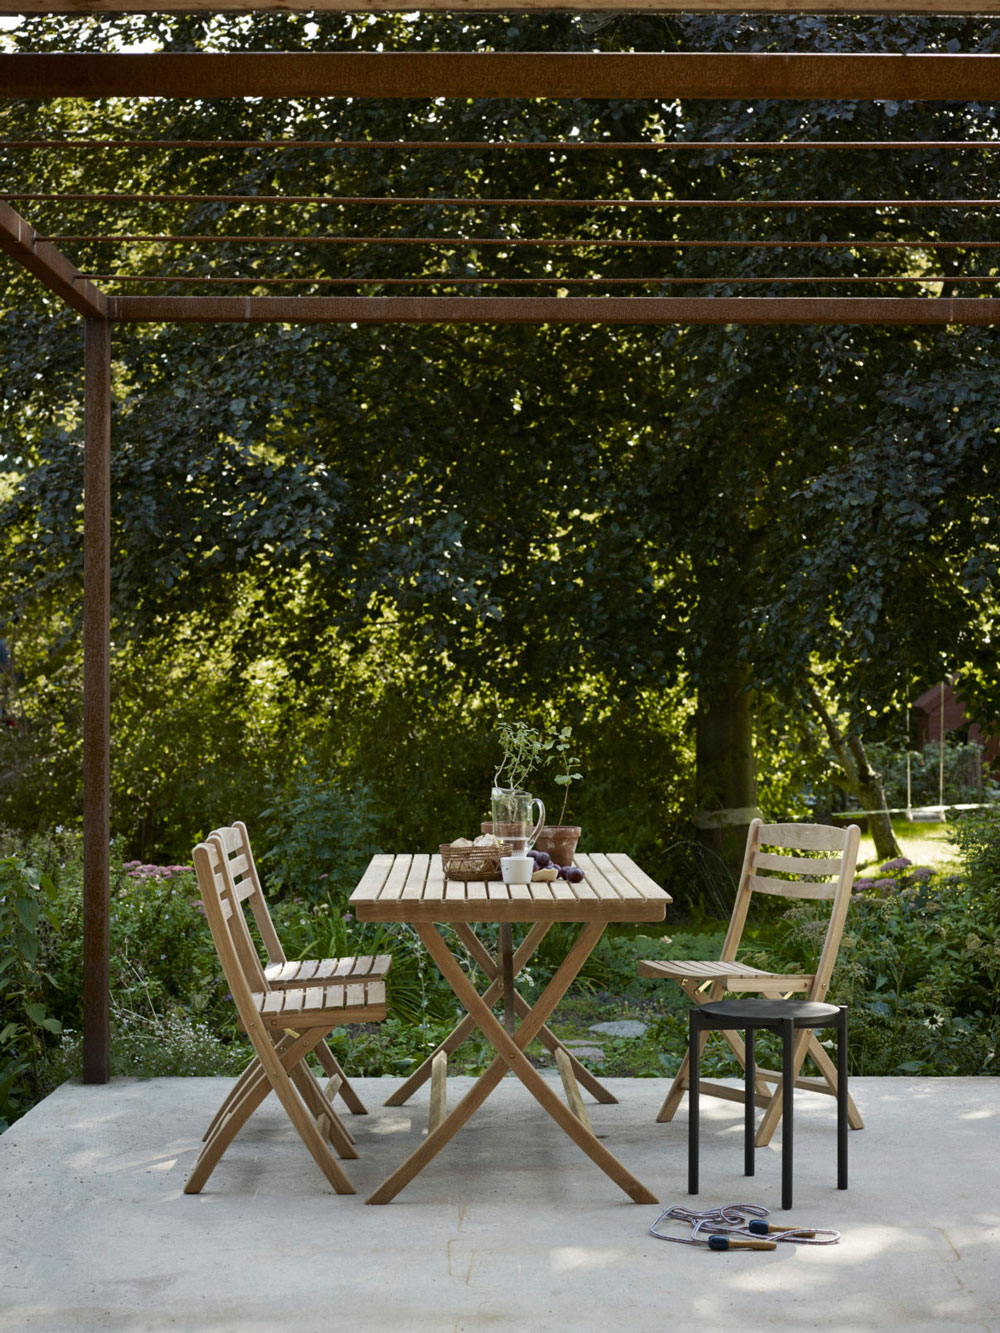 How To Care For Outdoor And Garden Teak Furniture Nordic Design